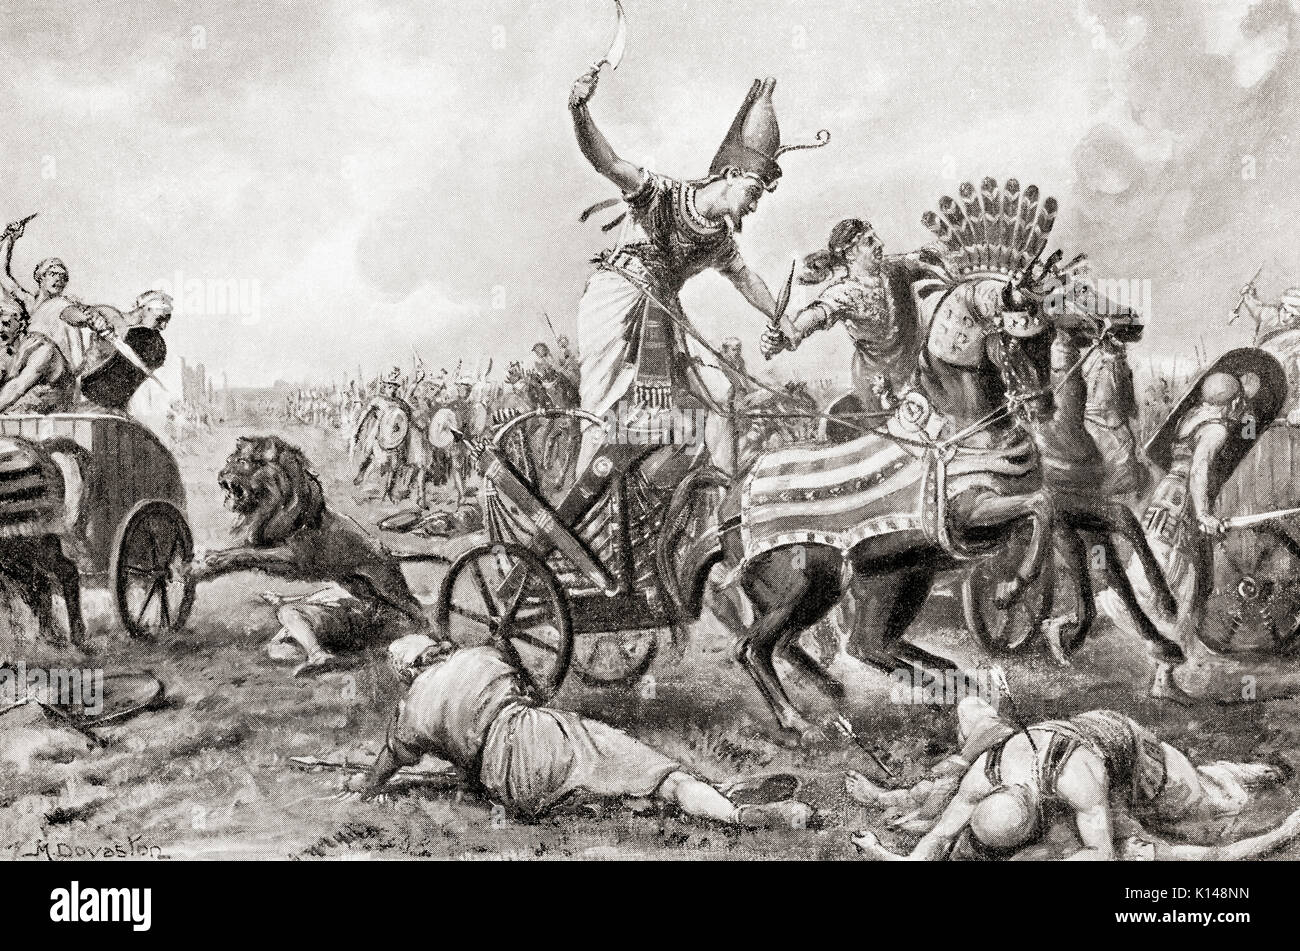 The Battle of Kadesh or Battle of Qadesh fought between the forces of the Egyptian Empire under Ramesses II and Stock Photo